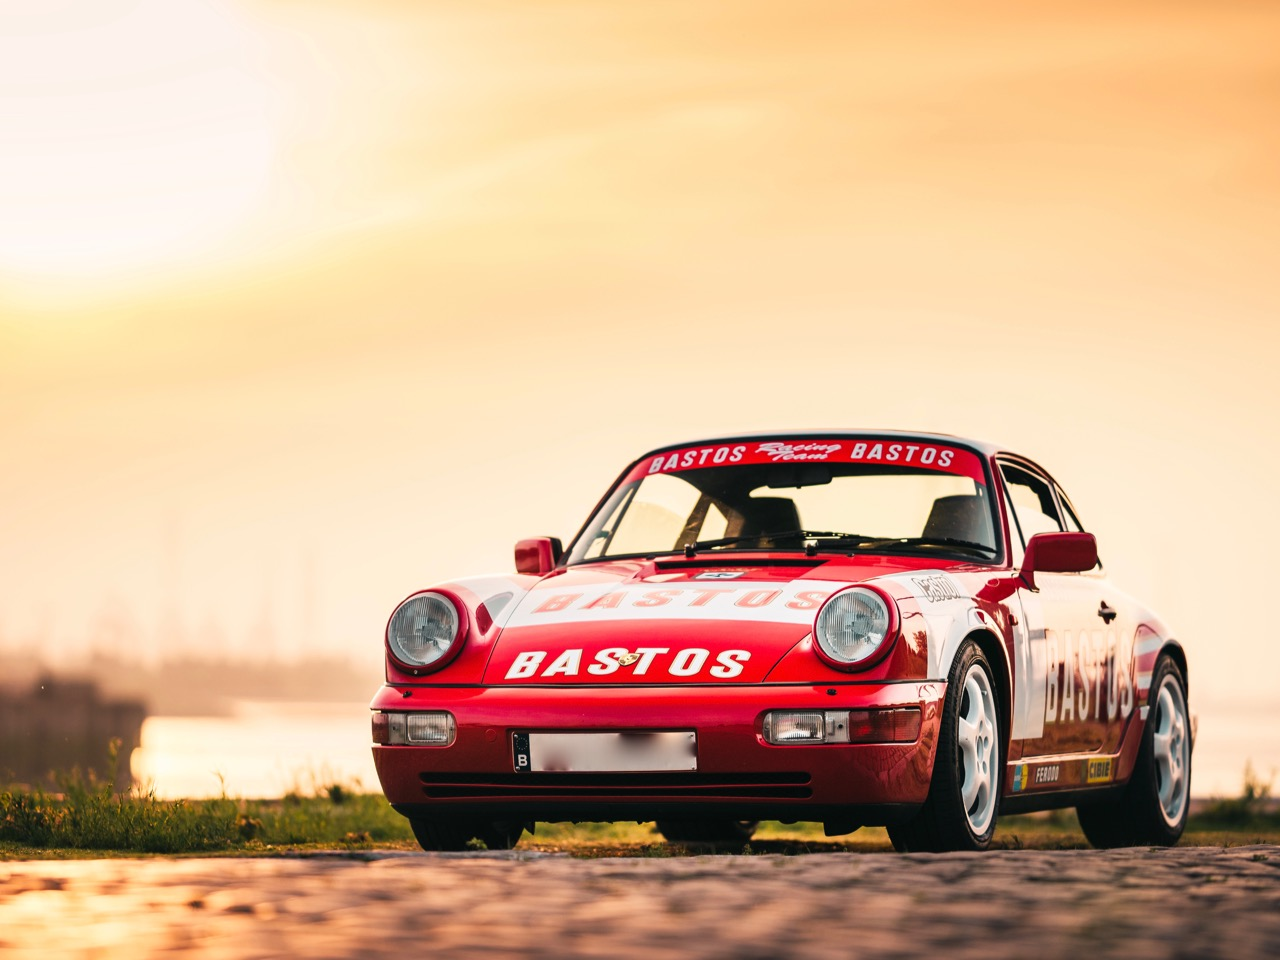 youngtimer.one - Porsche 964 Carrera 4 - Guards Red - 1989 - 5 of 20